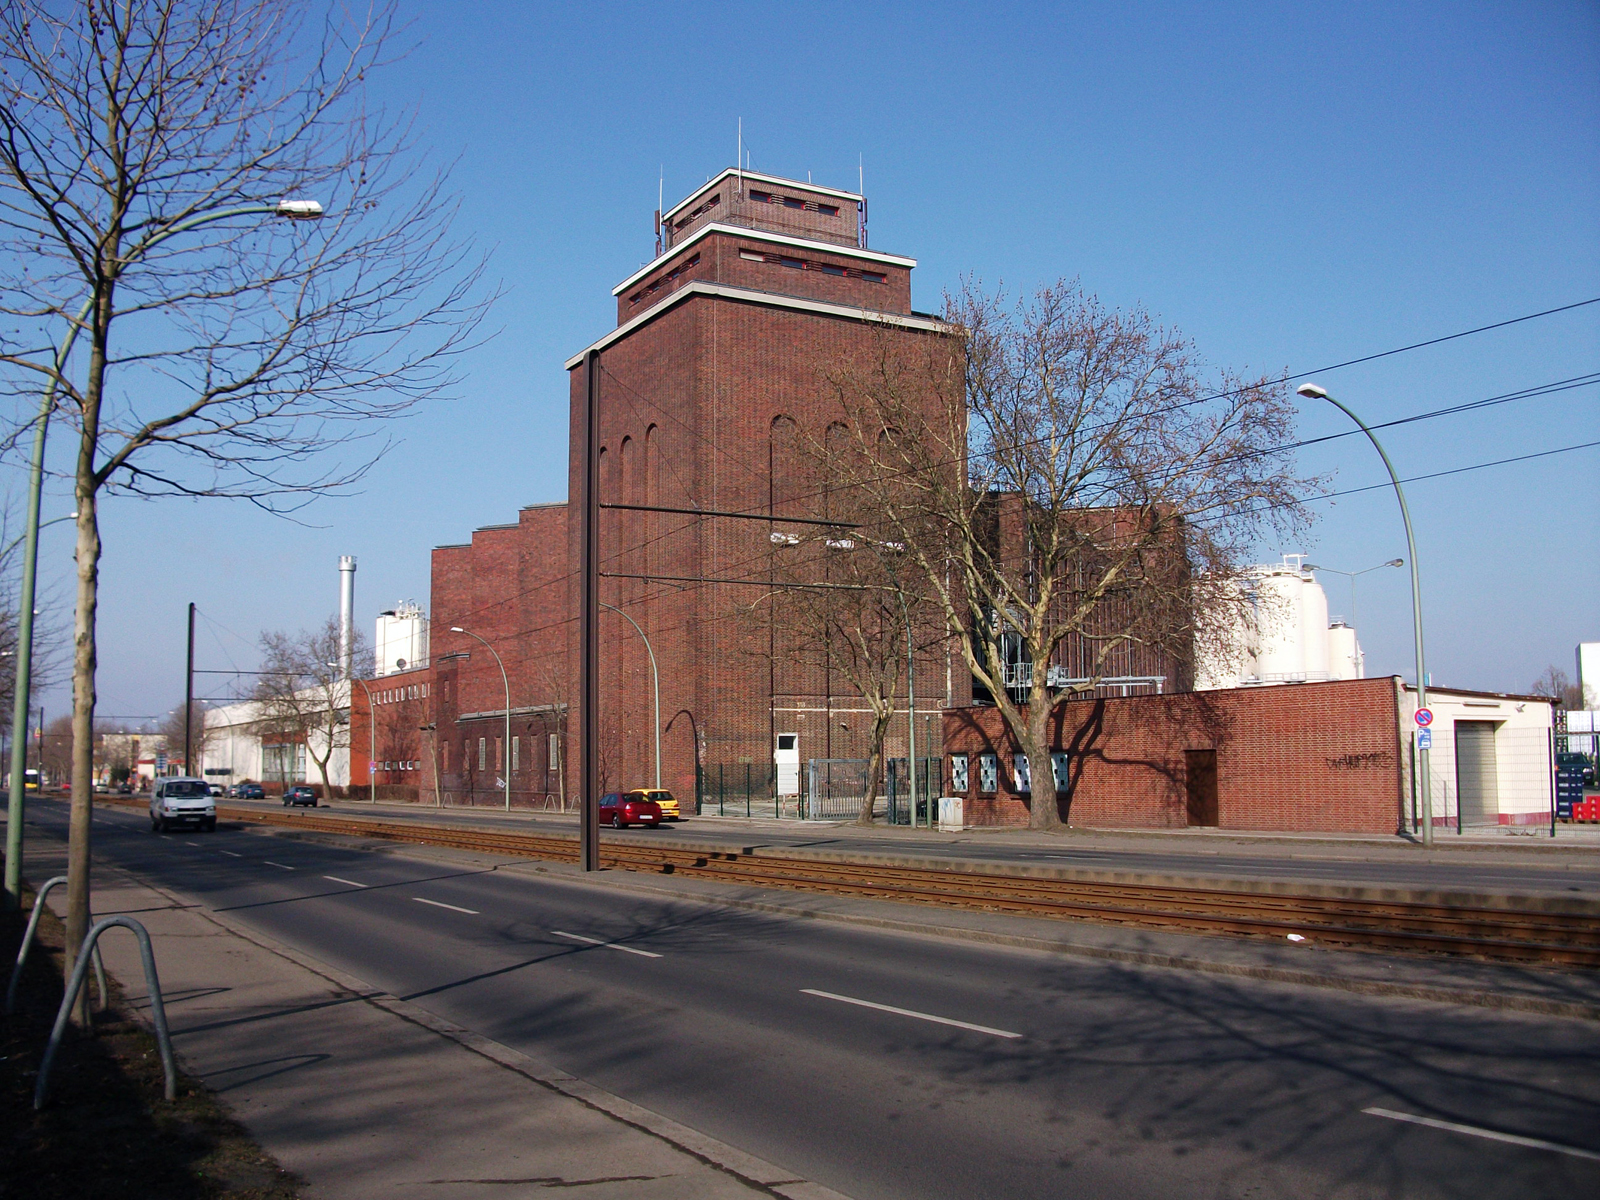 file berliner kindl schultheiss brauerei wikimedia commons